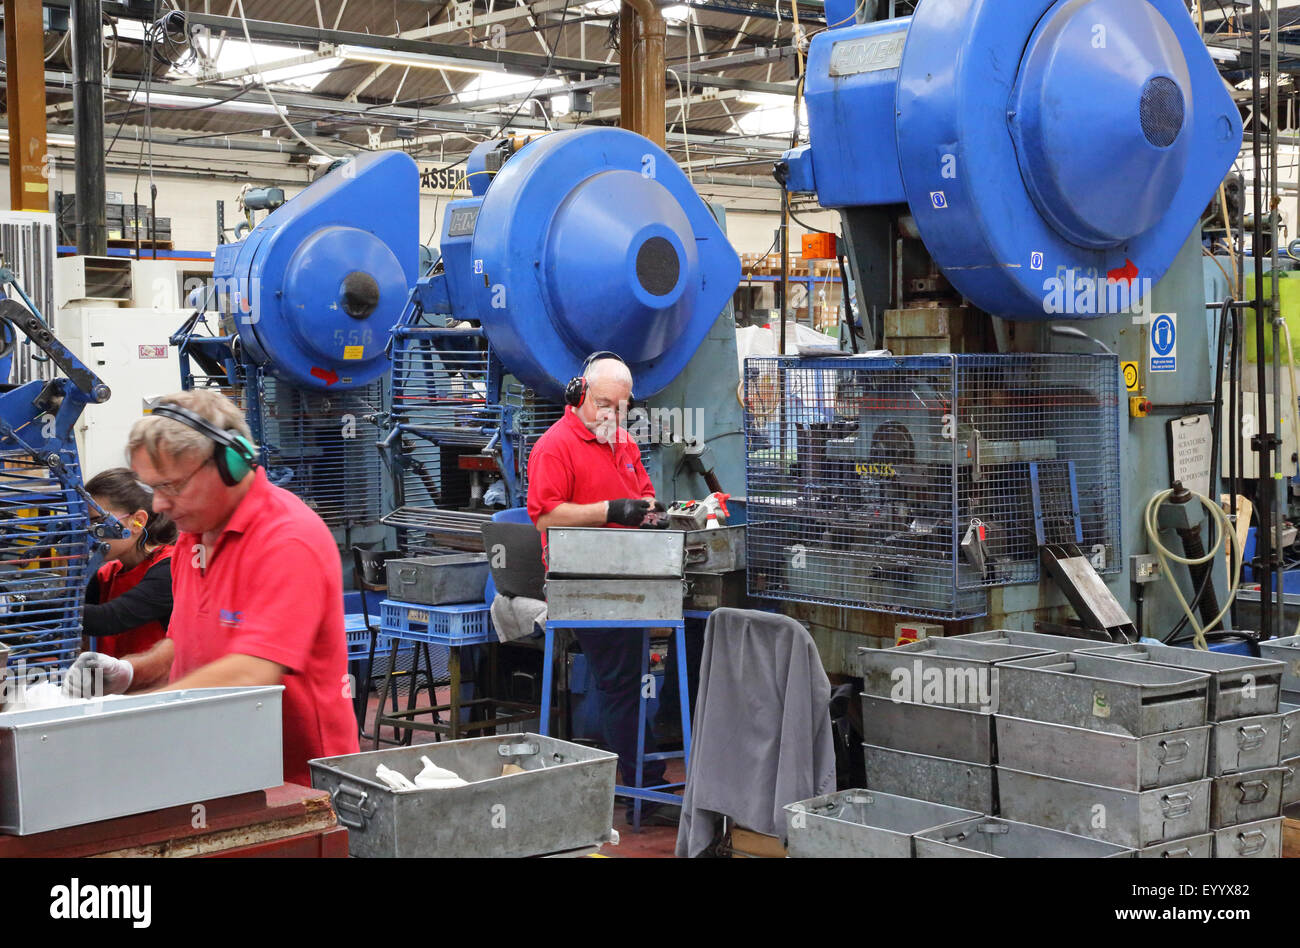 Workers in a factory manufacturing metal components for the construction industry using large steel pressing machines - Stock Image